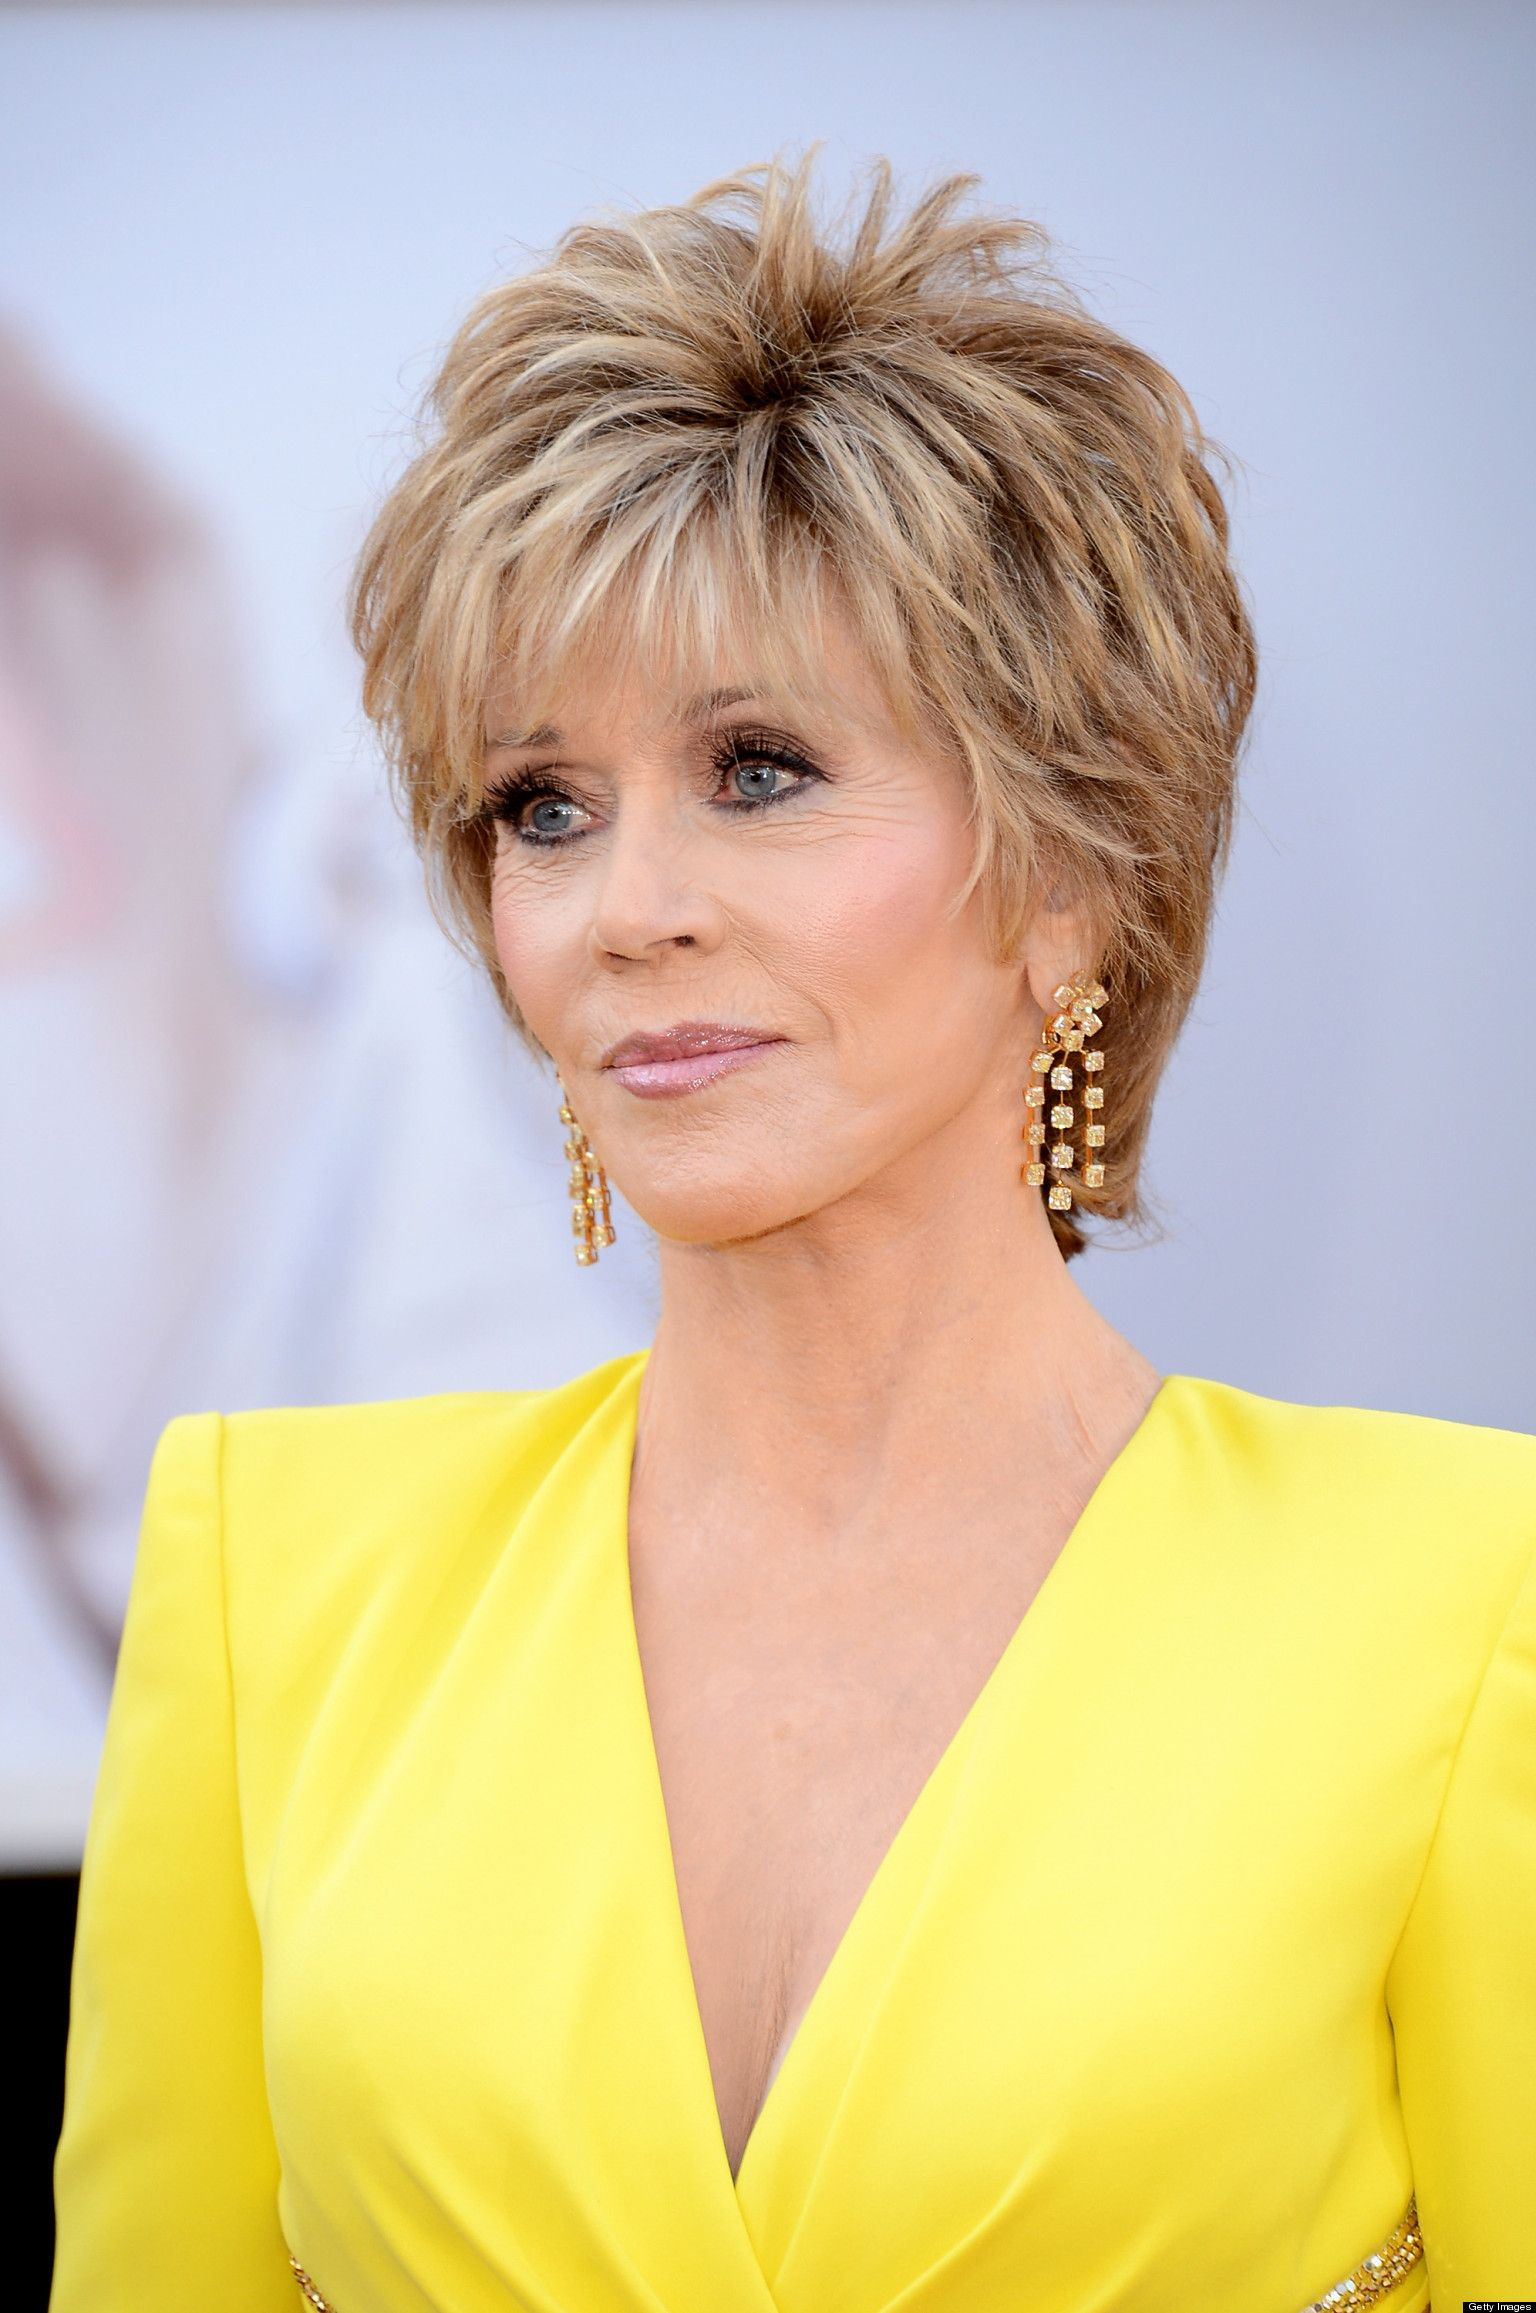 Short Hairstyle for Mature Women Over from Paula Deen